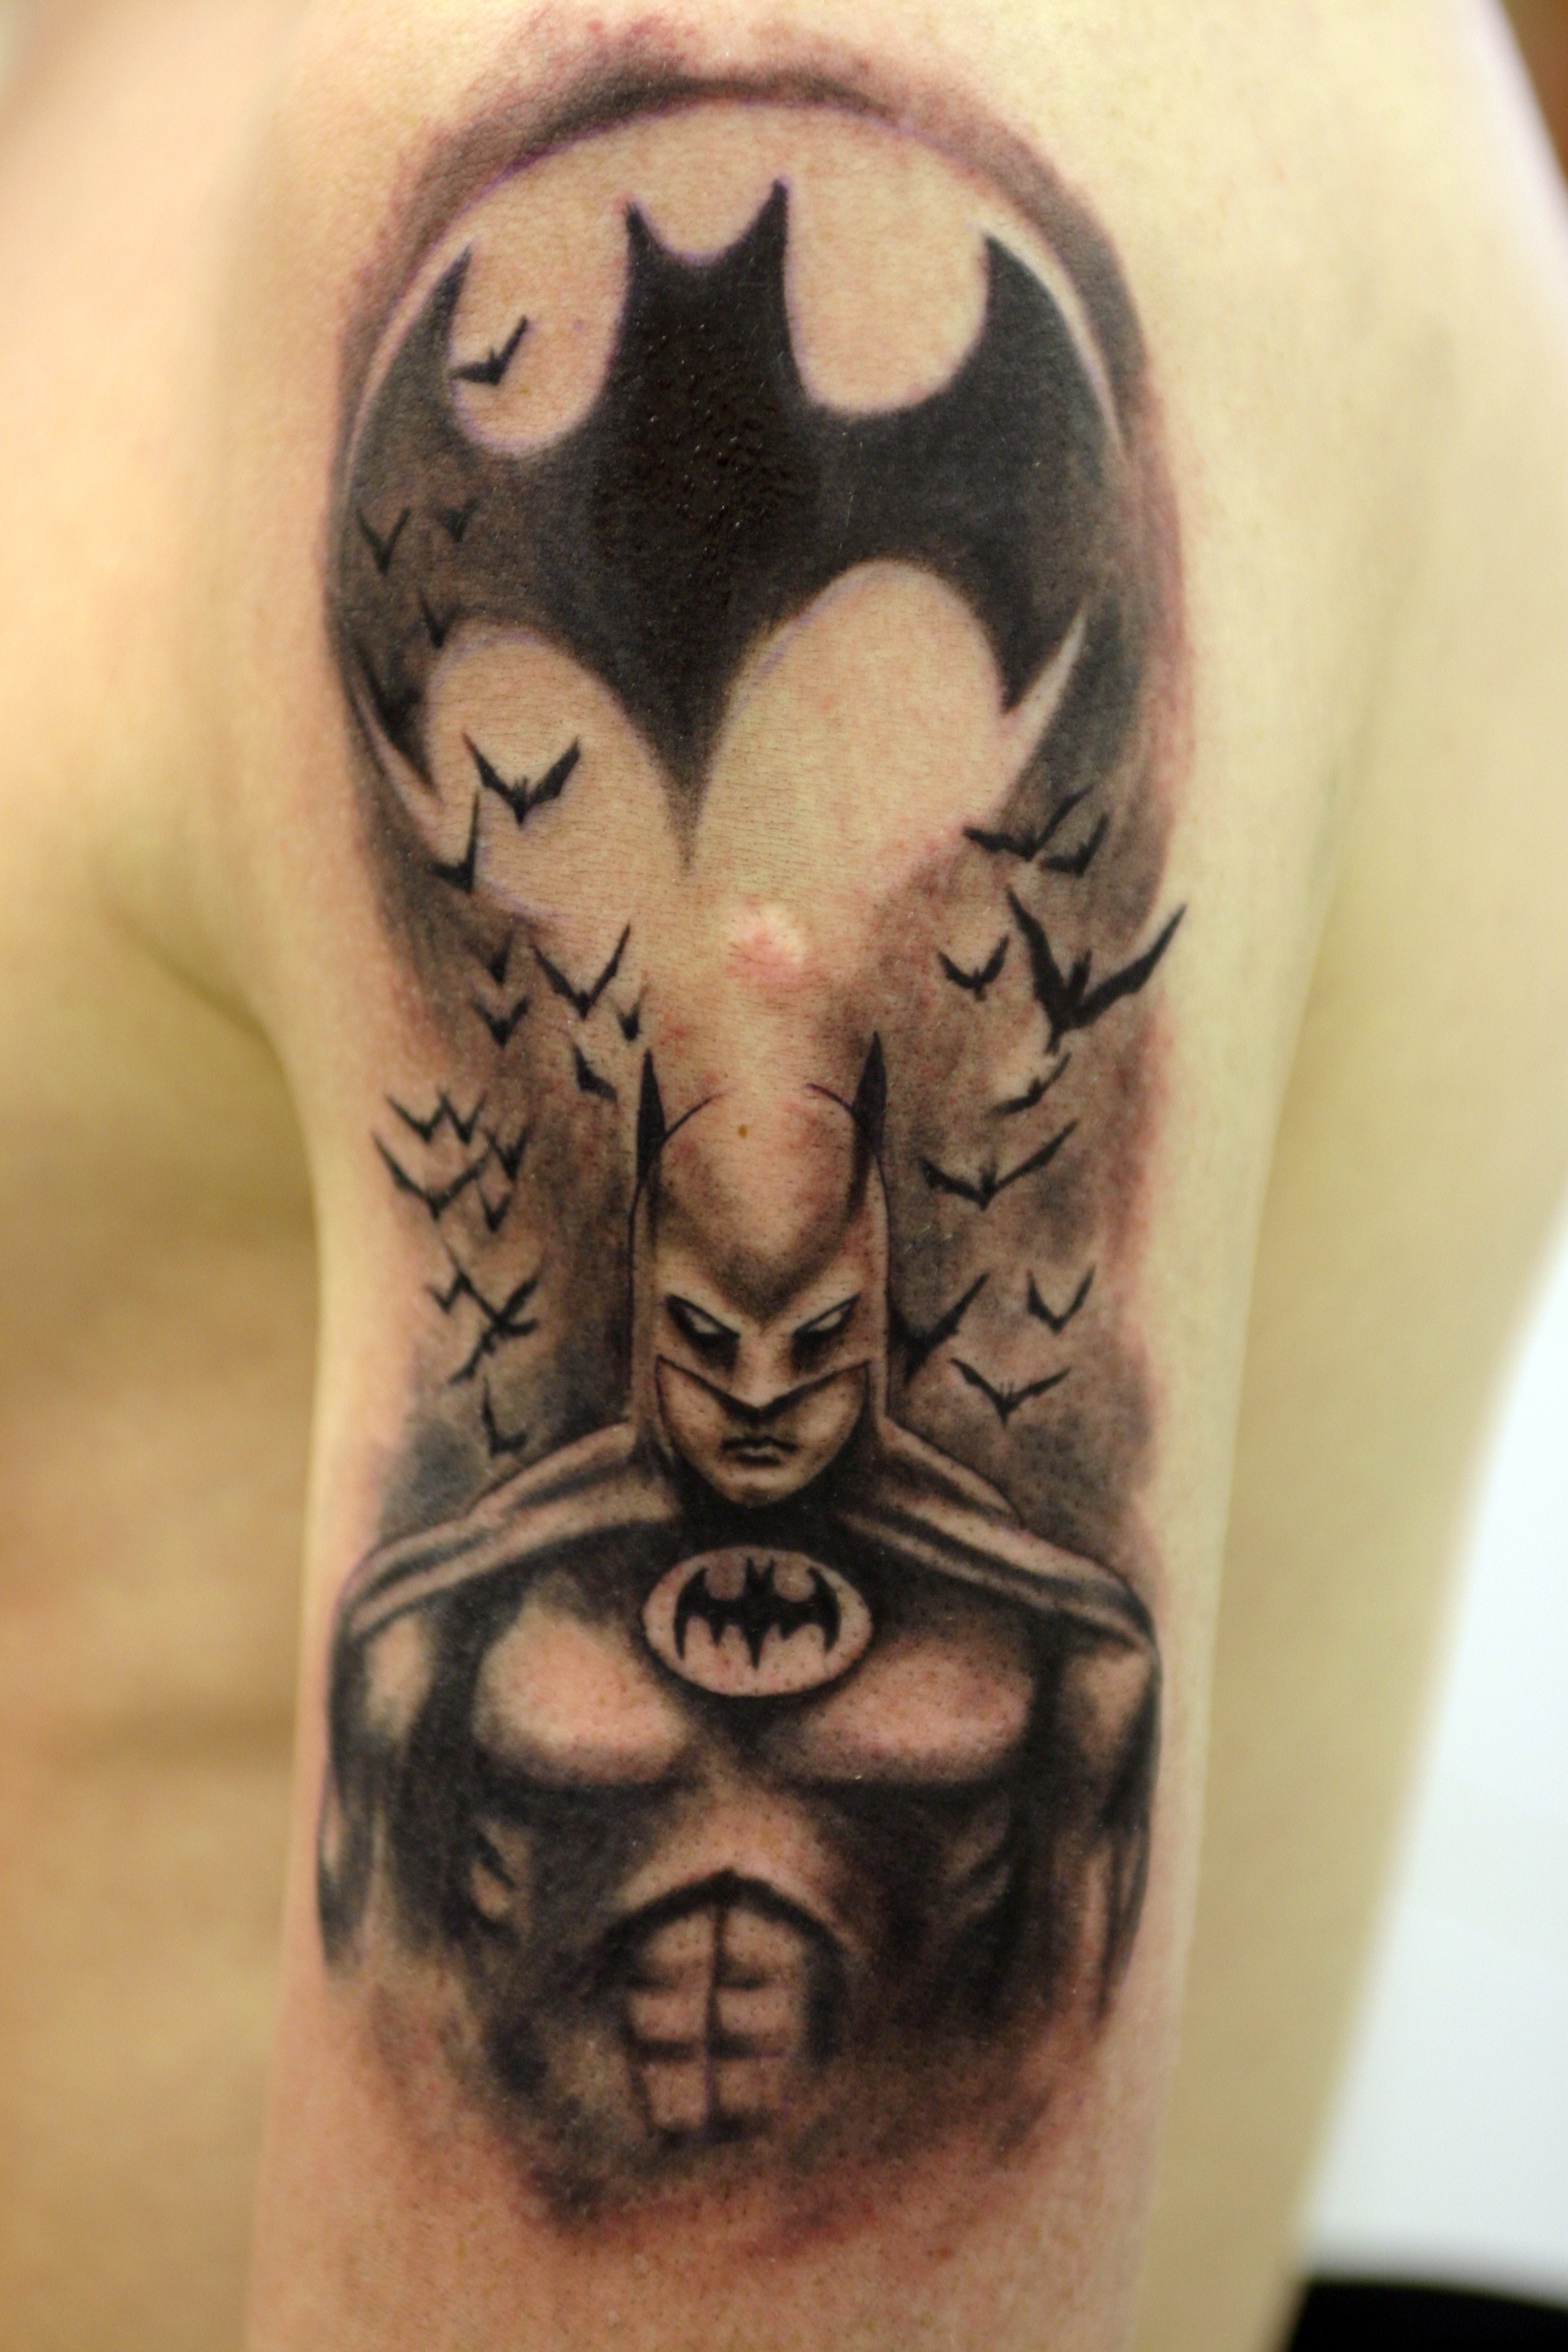 batman tattoos designs ideas and meaning tattoos for you. Black Bedroom Furniture Sets. Home Design Ideas